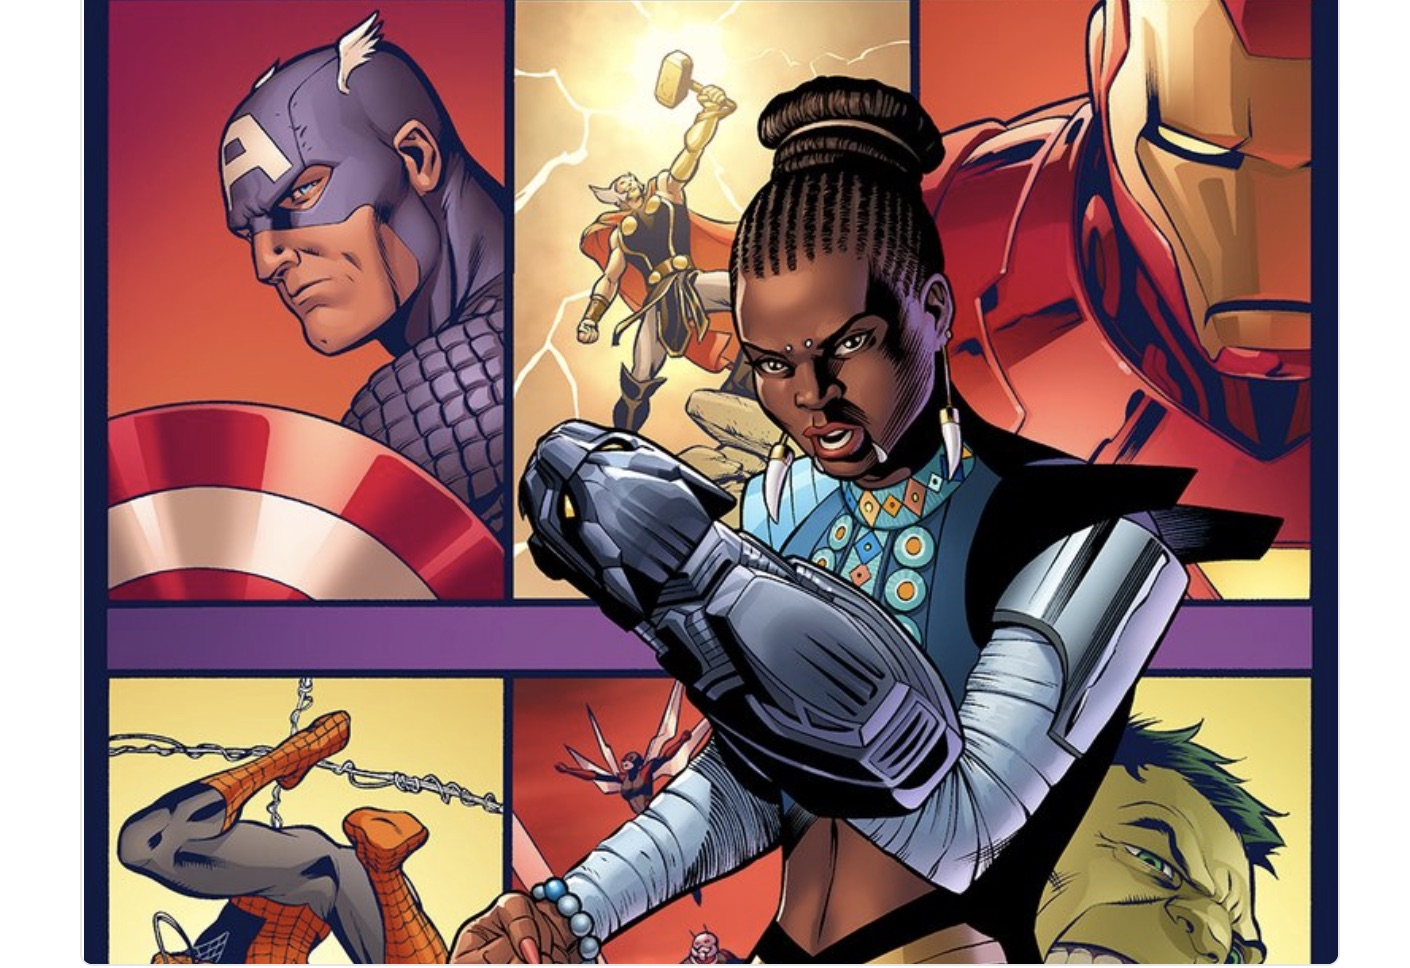 Shuri, aka Black Panther's sister, is getting her own comic book series, and yas princess!